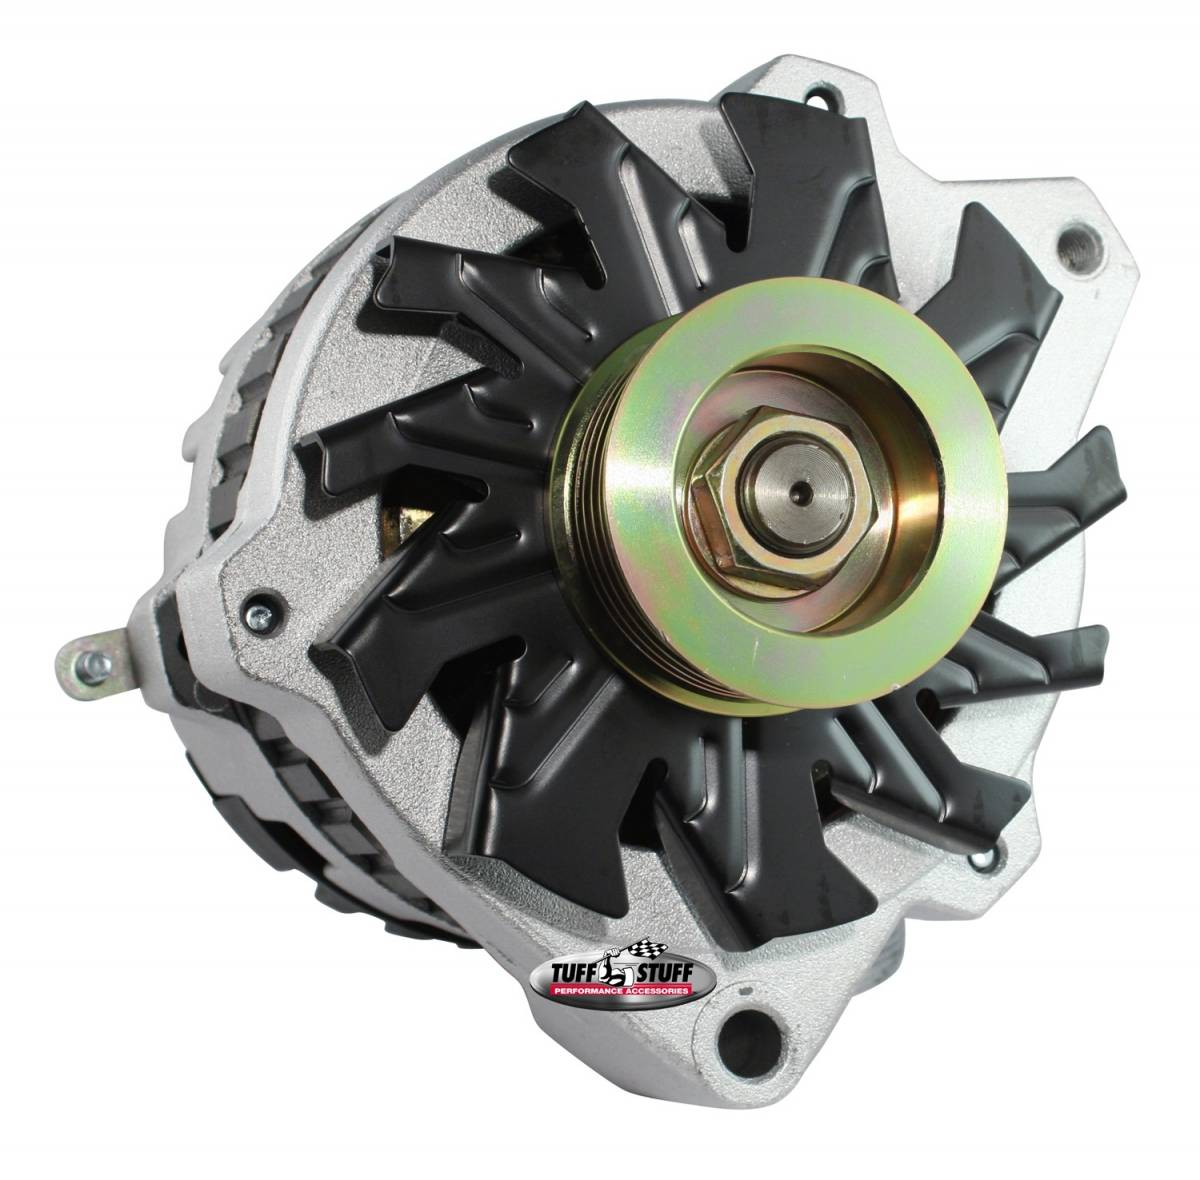 Tuff Stuff Performance - Alternator 105 AMP 1 Wire Or OEM 6 Groove Pulley Factory Cast PLUS+ 7860-16G